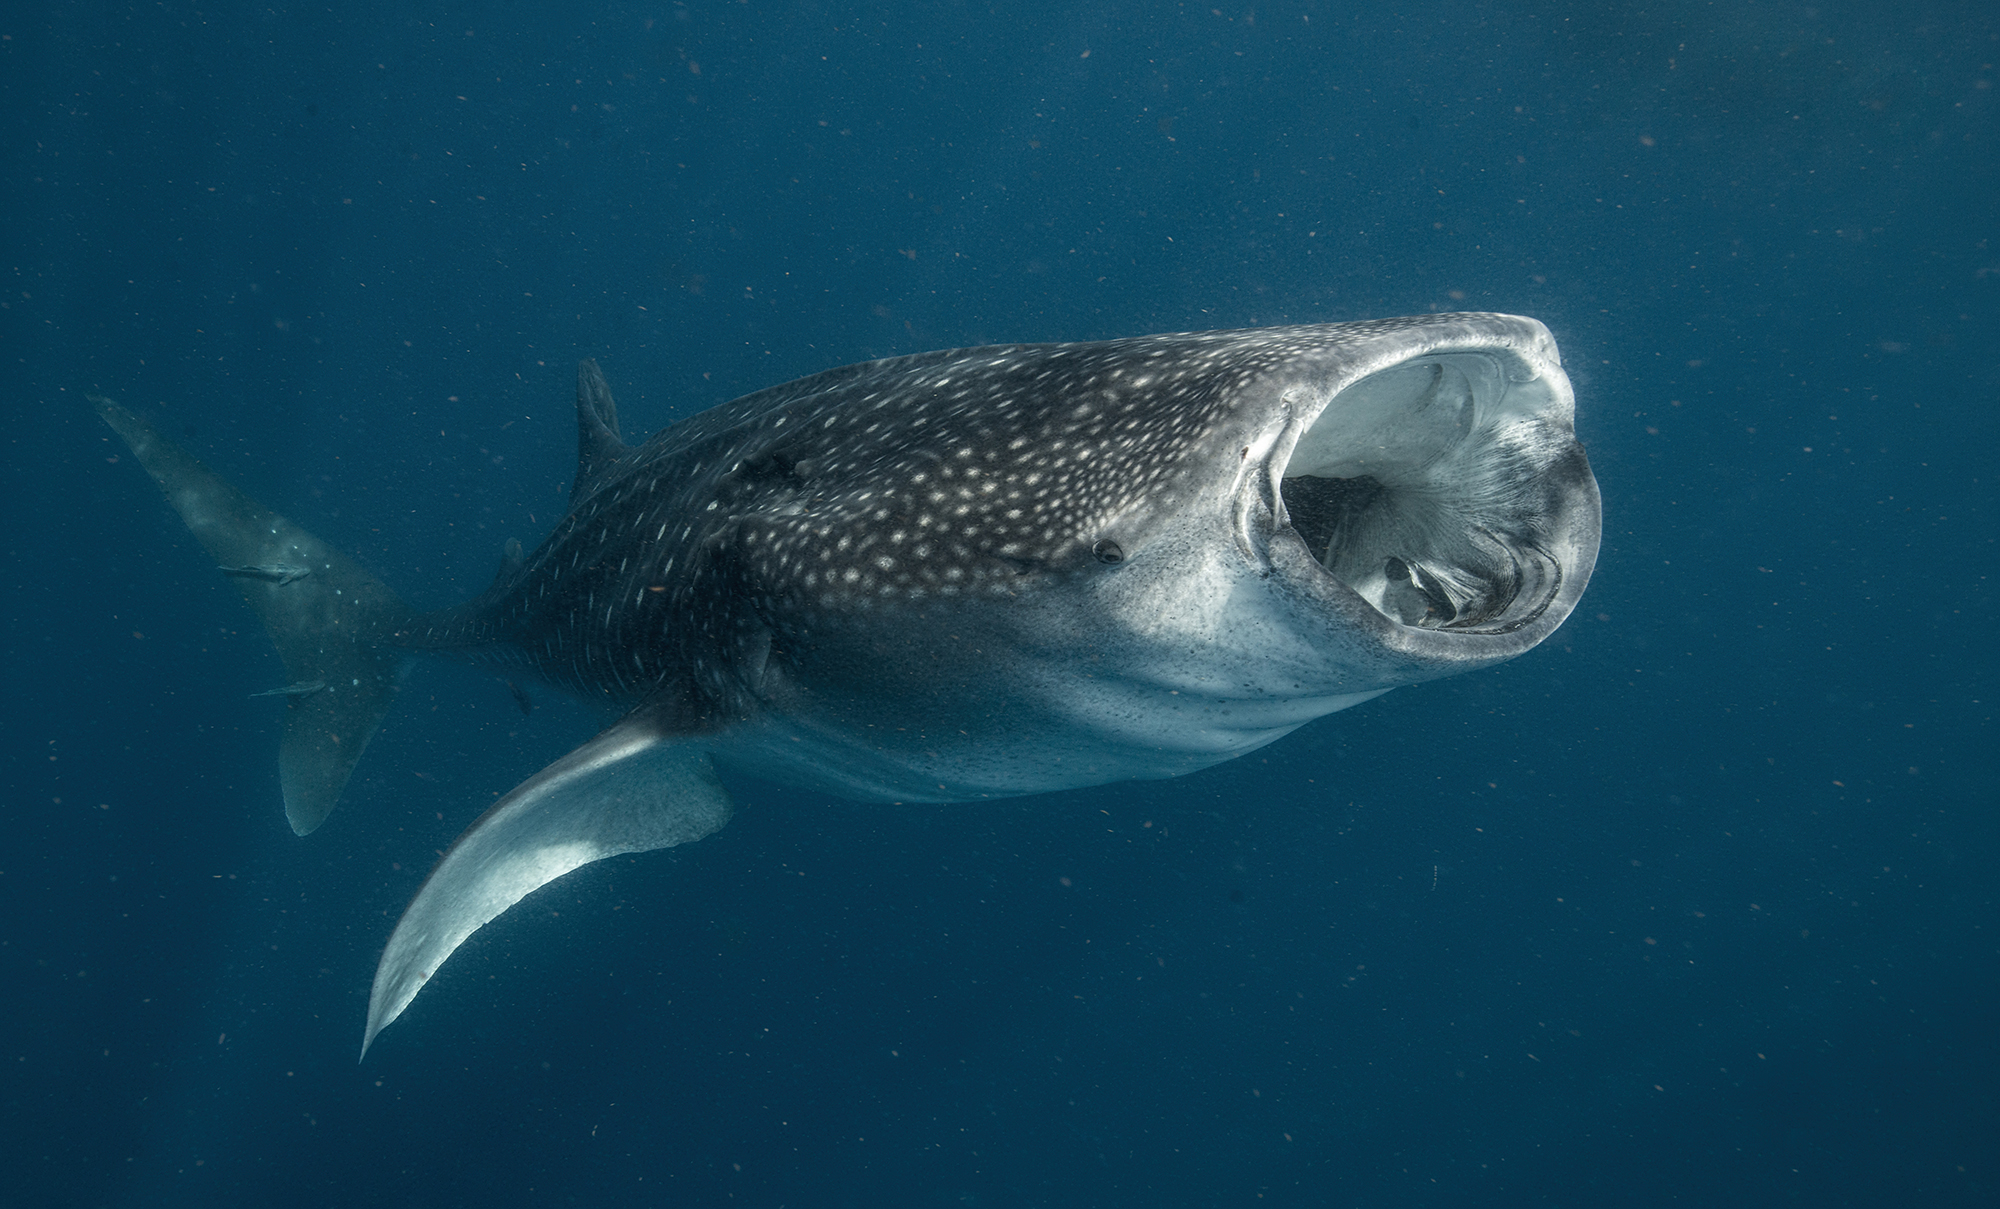 whale shark eating credit: Amanda cotton / Coral reef image bank